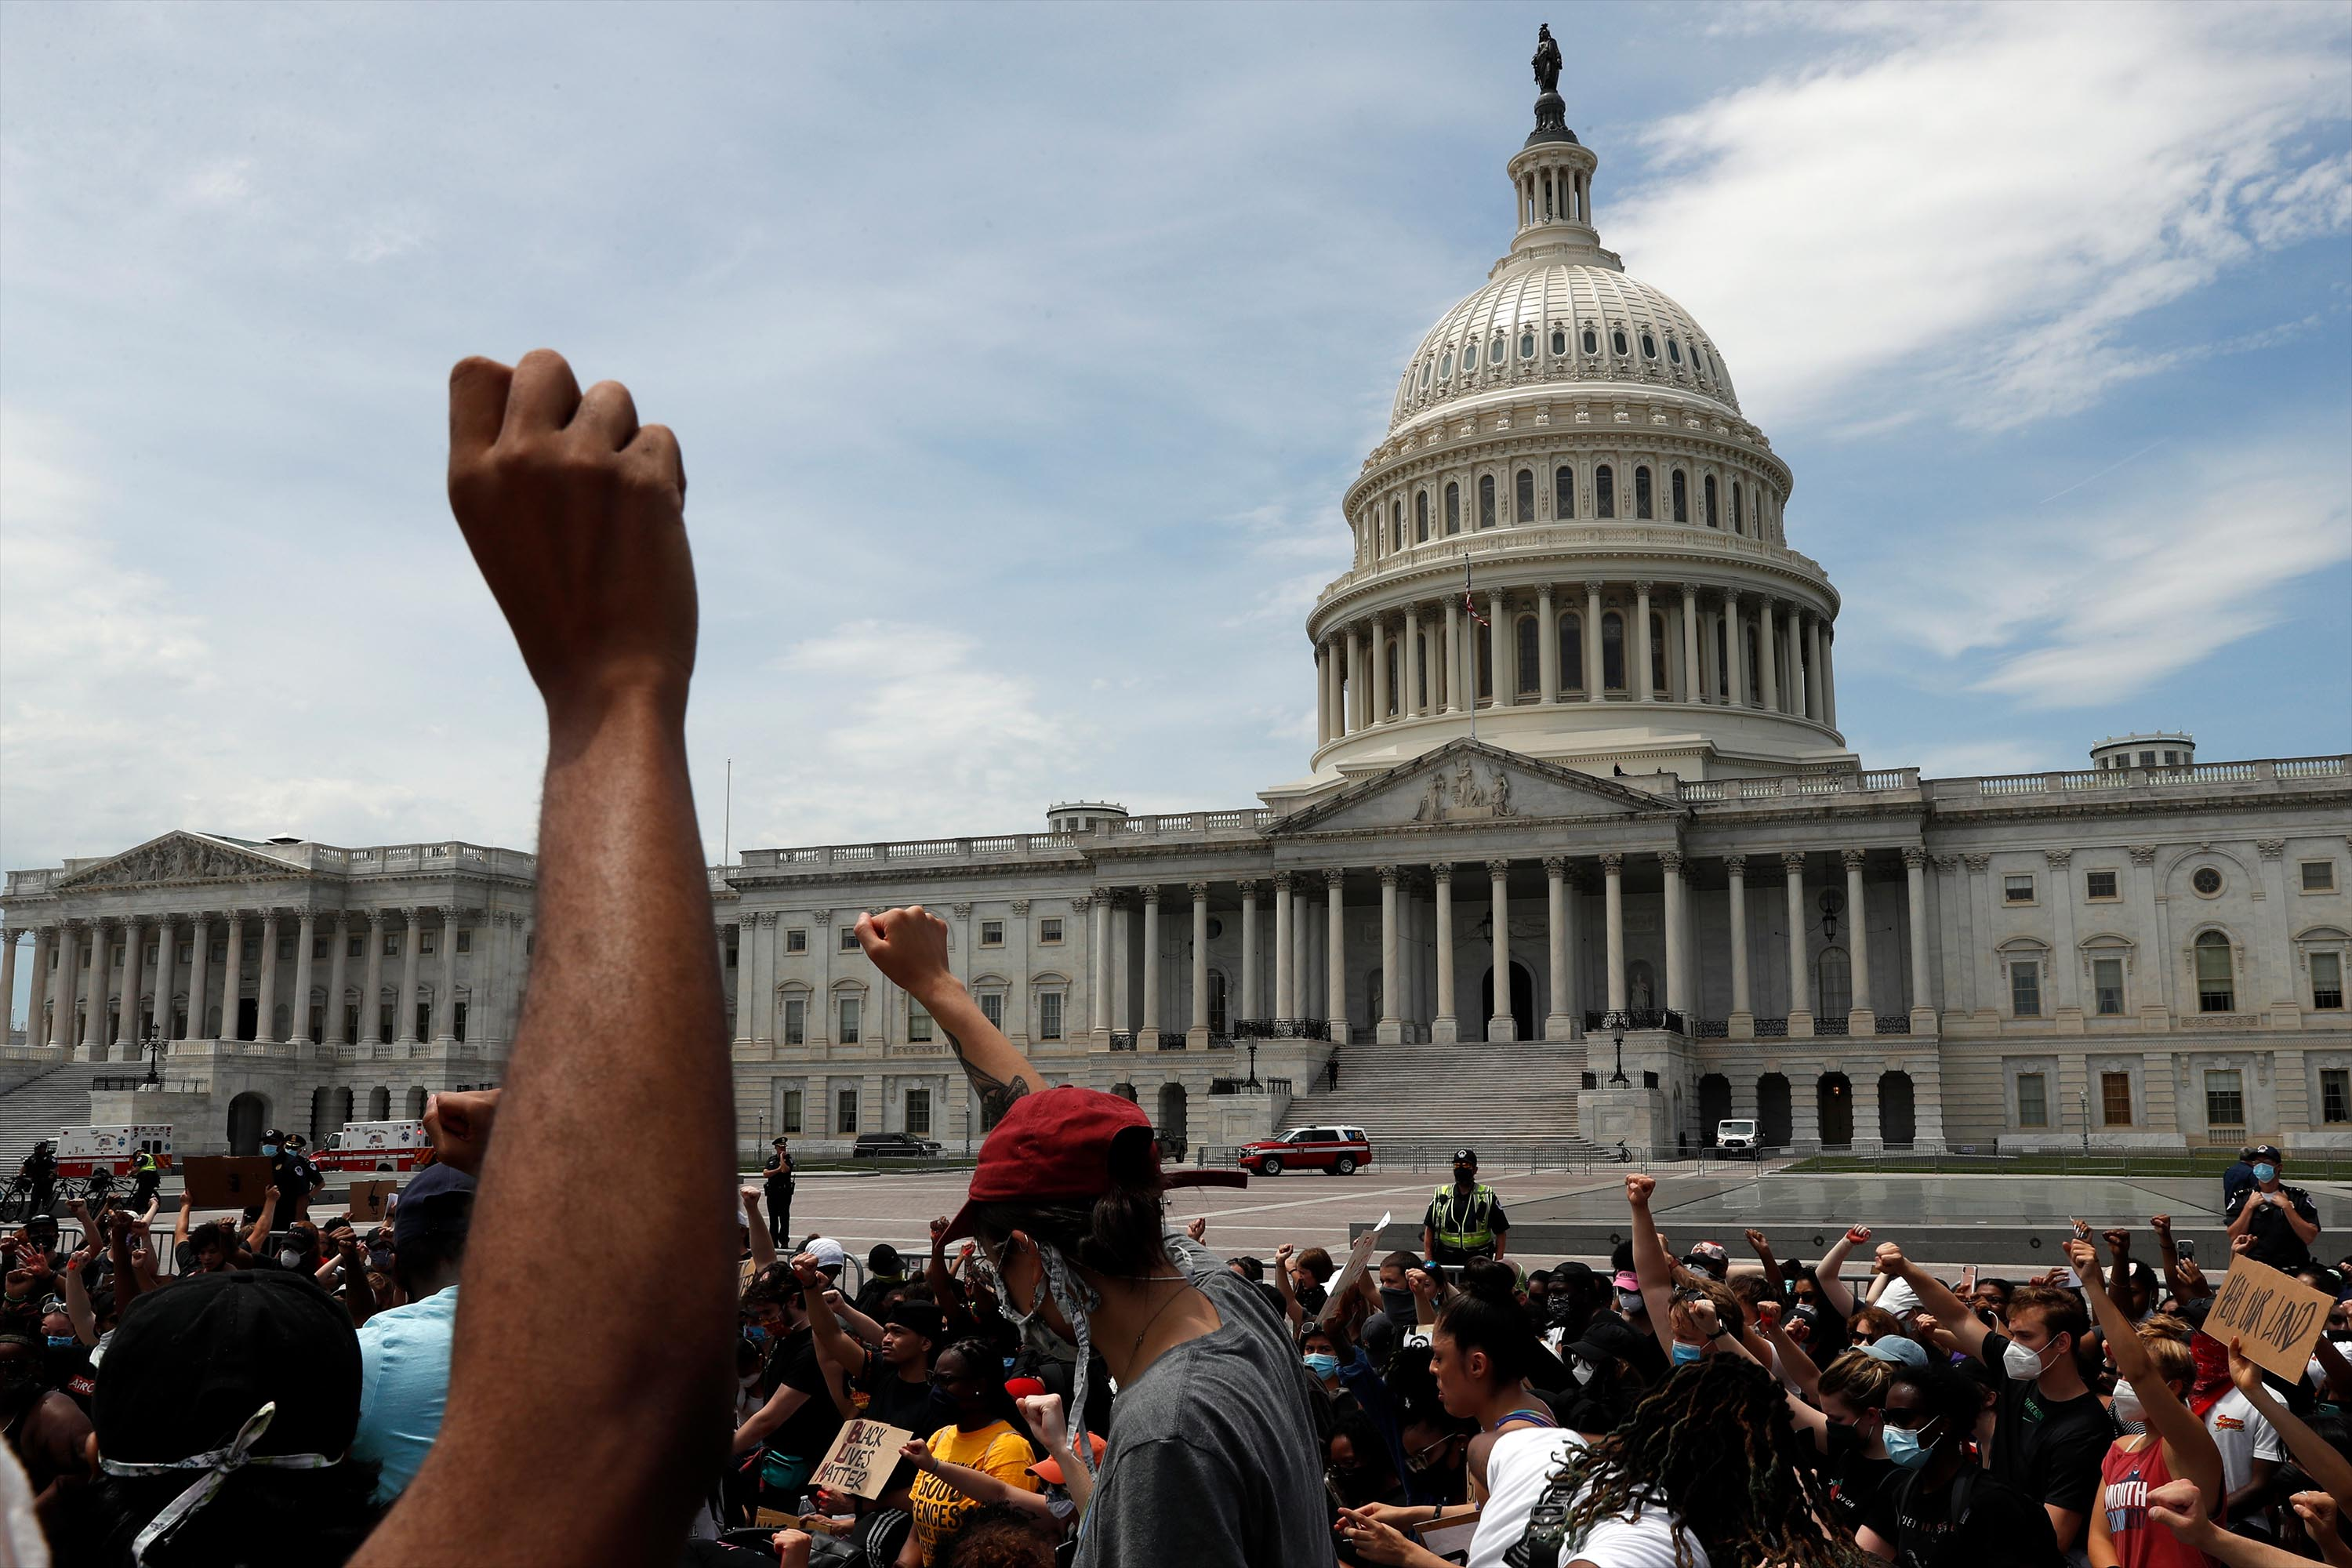 George Floyd's brother to testify before Congress on police accountability